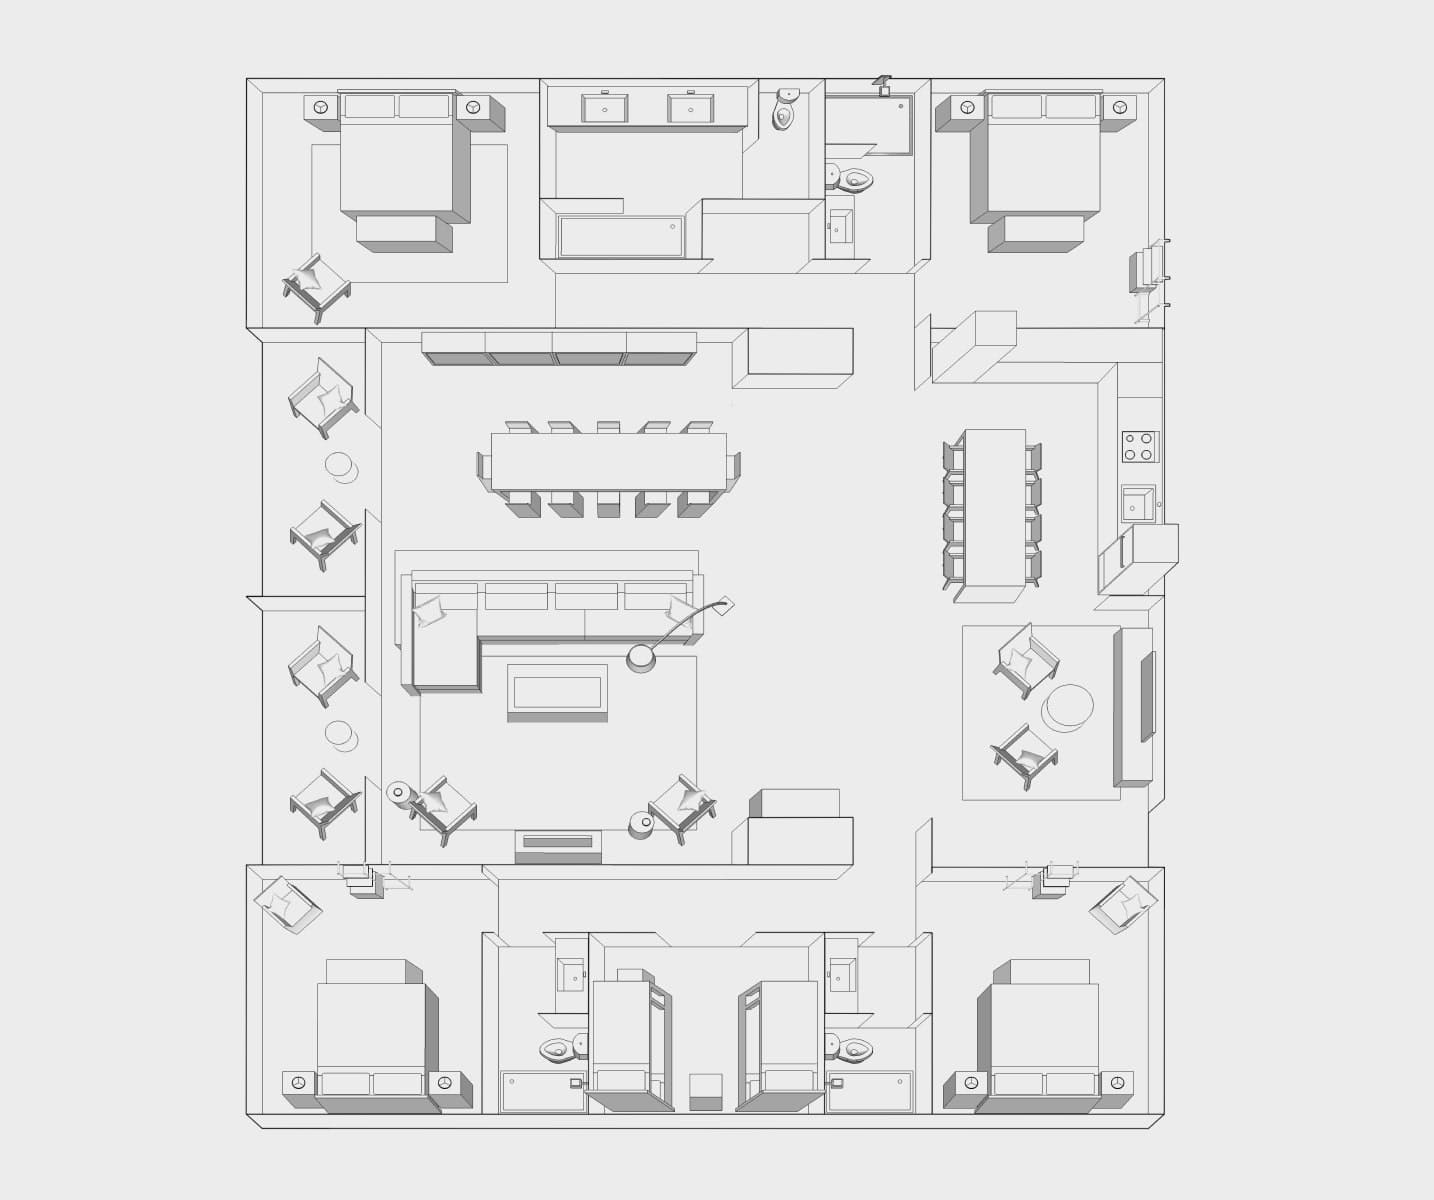 5 Bedroom Floor Plan Image